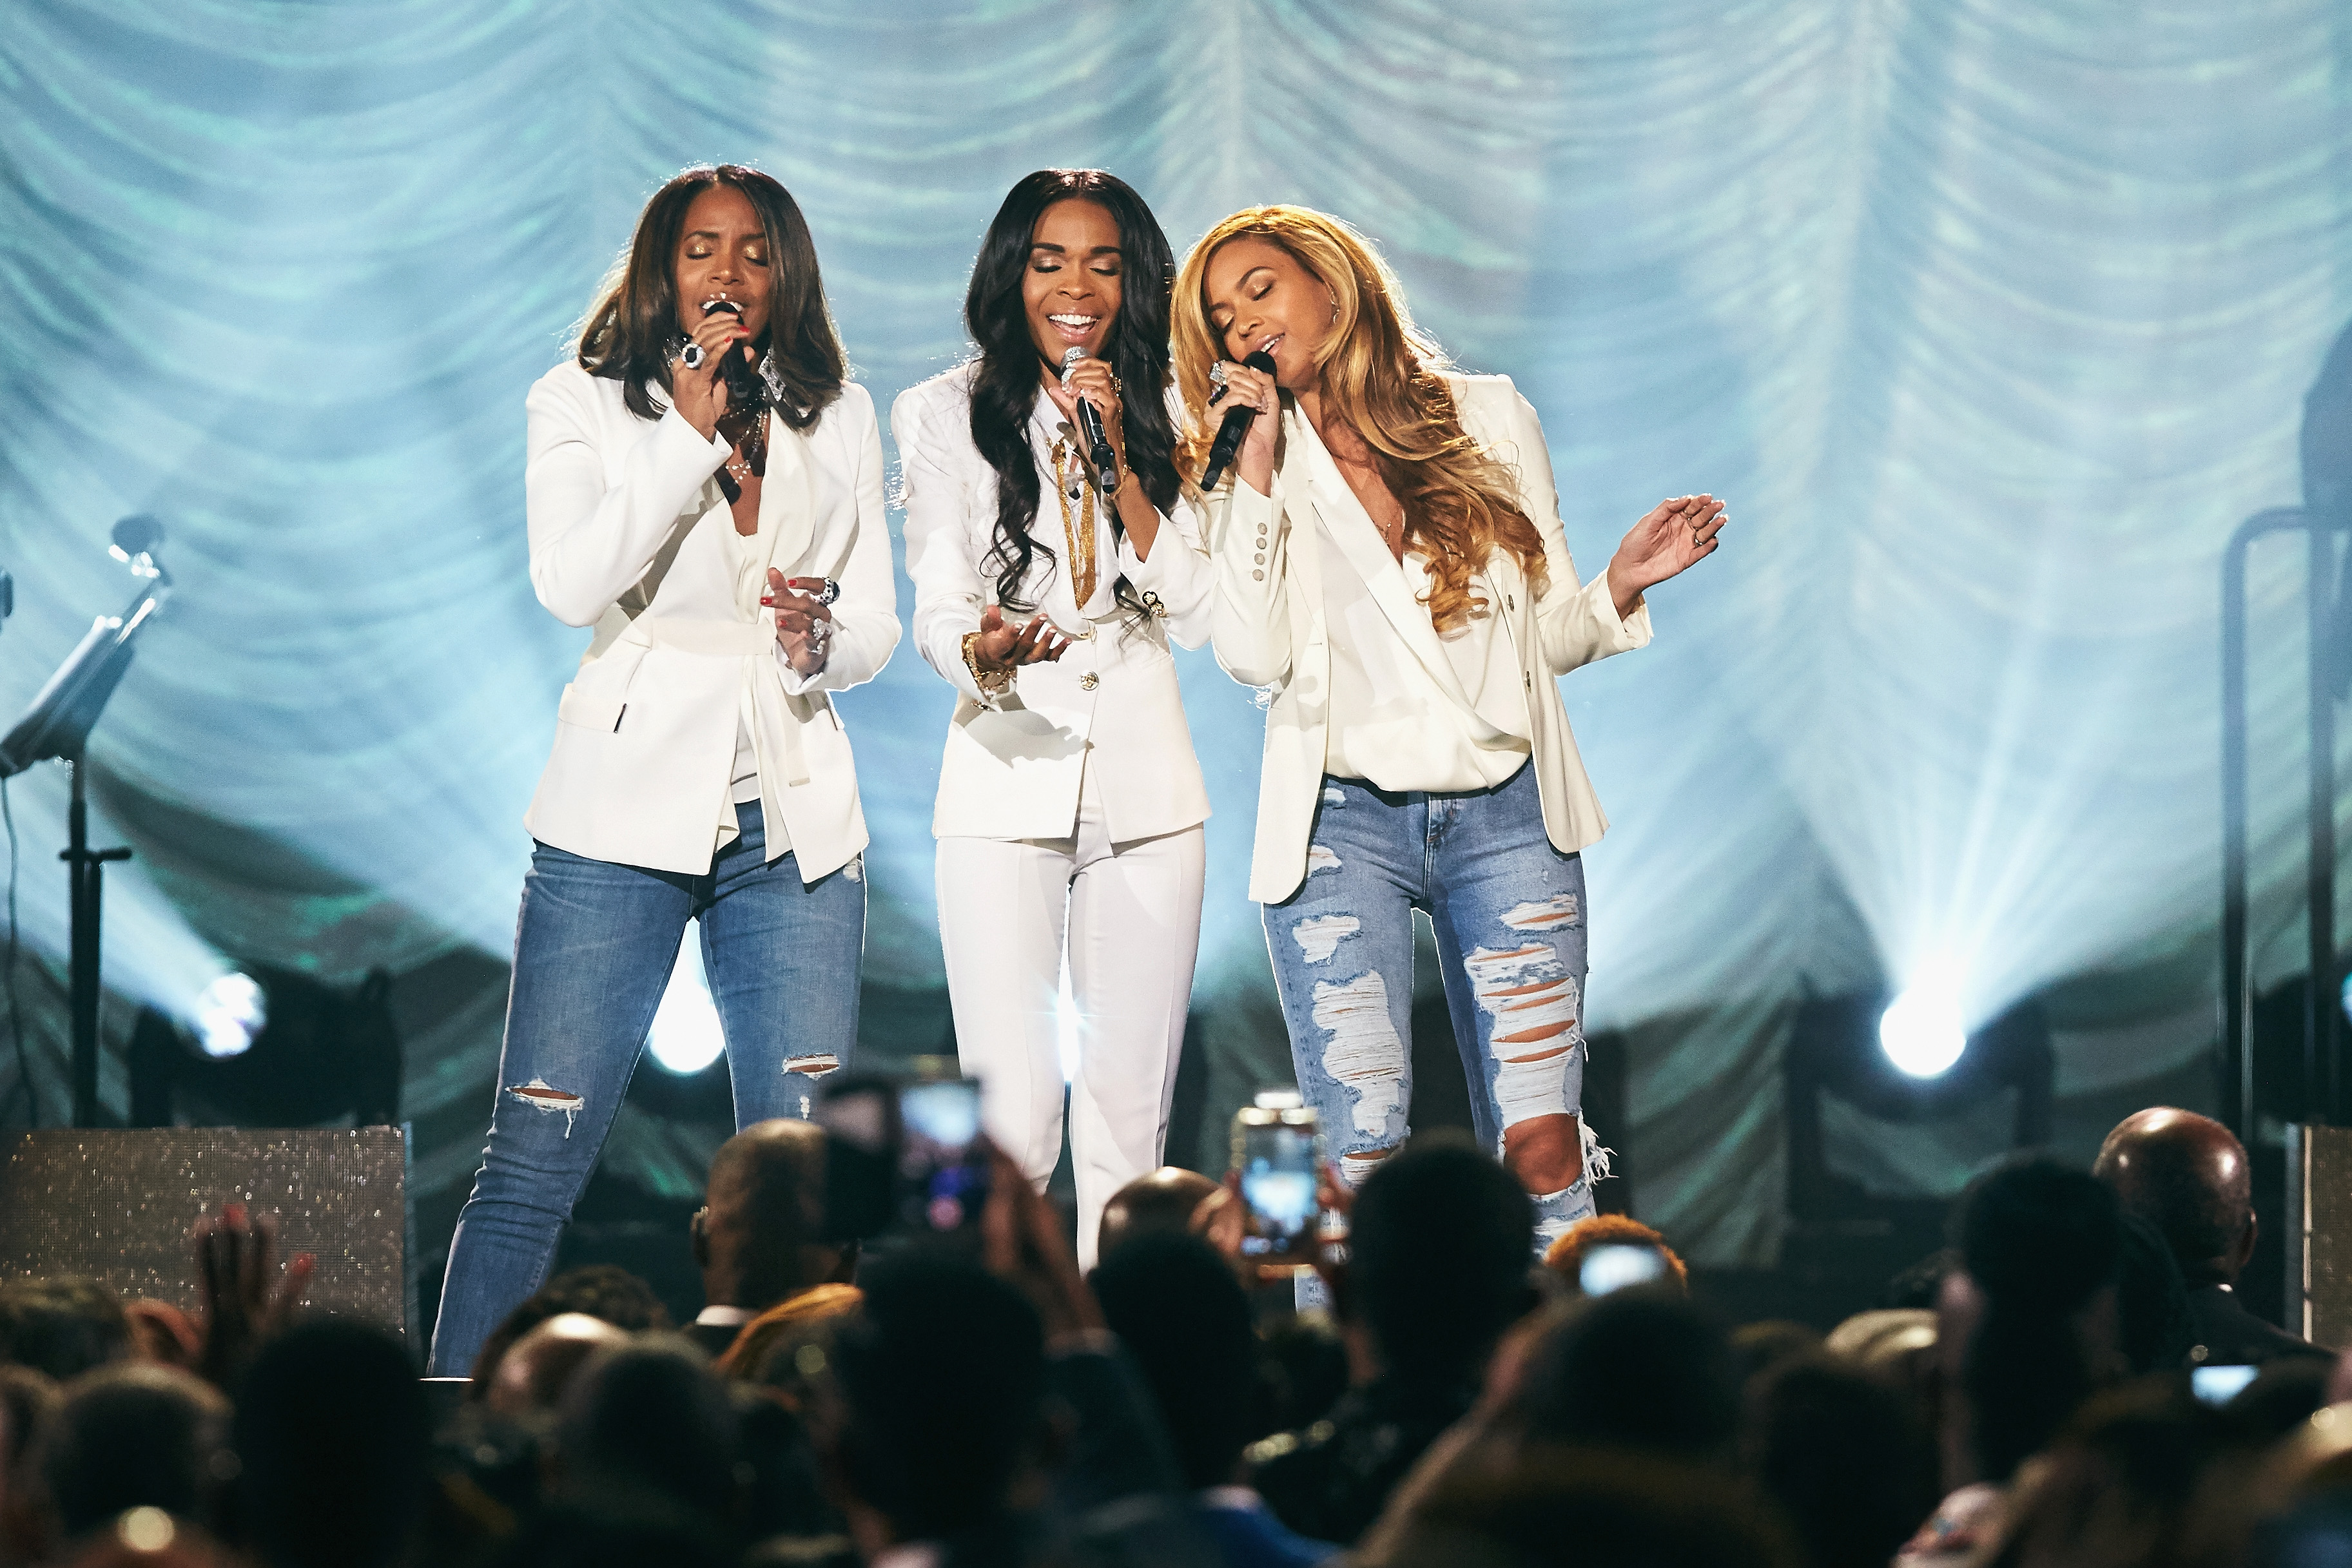 destinys child lose my breath song free download